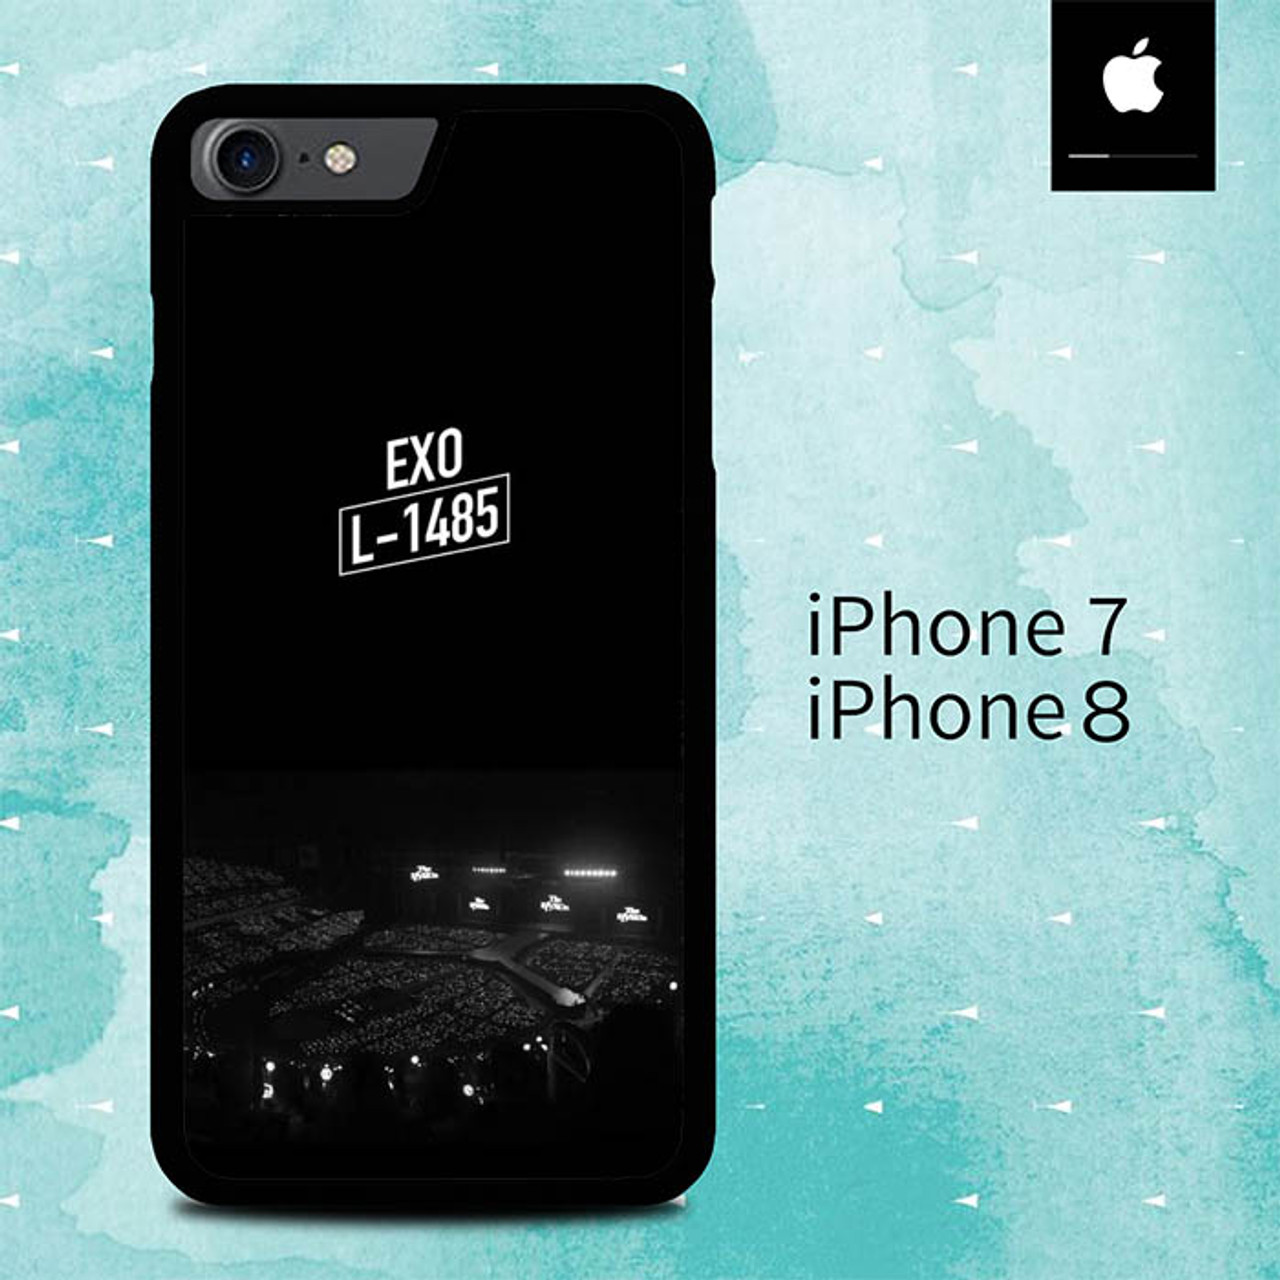 Exo Fanbase K Pop Exo L O5175 Iphone 7 Iphone 8 Case Flazzy Store